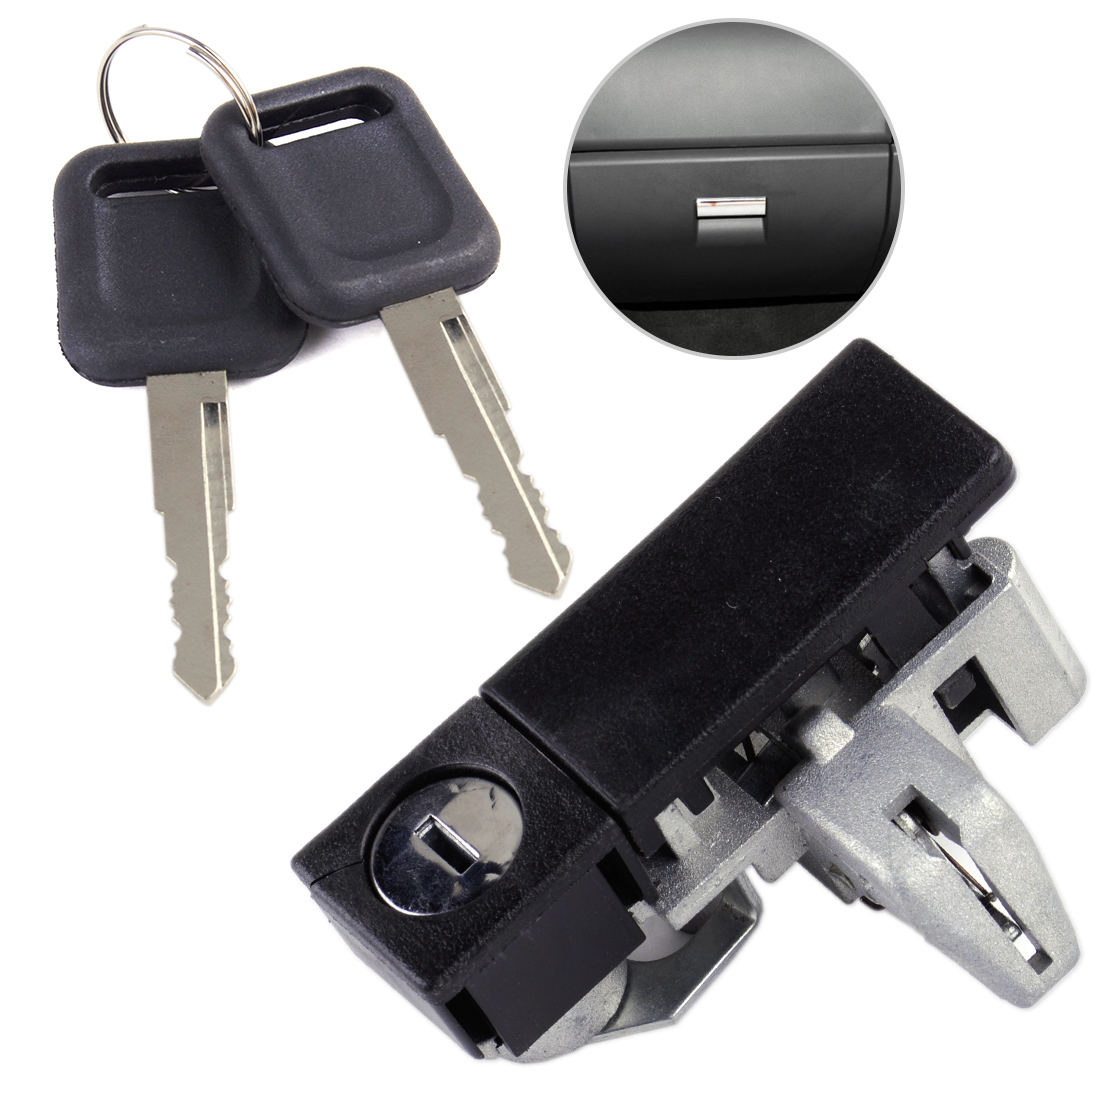 DWCX New Car Glove Tool Box Lock With Two Keys 8.4 x 2.8 x 4.1cm Fit For Great Wall V200 V240 2010 2011 2012 2013 2014 2015